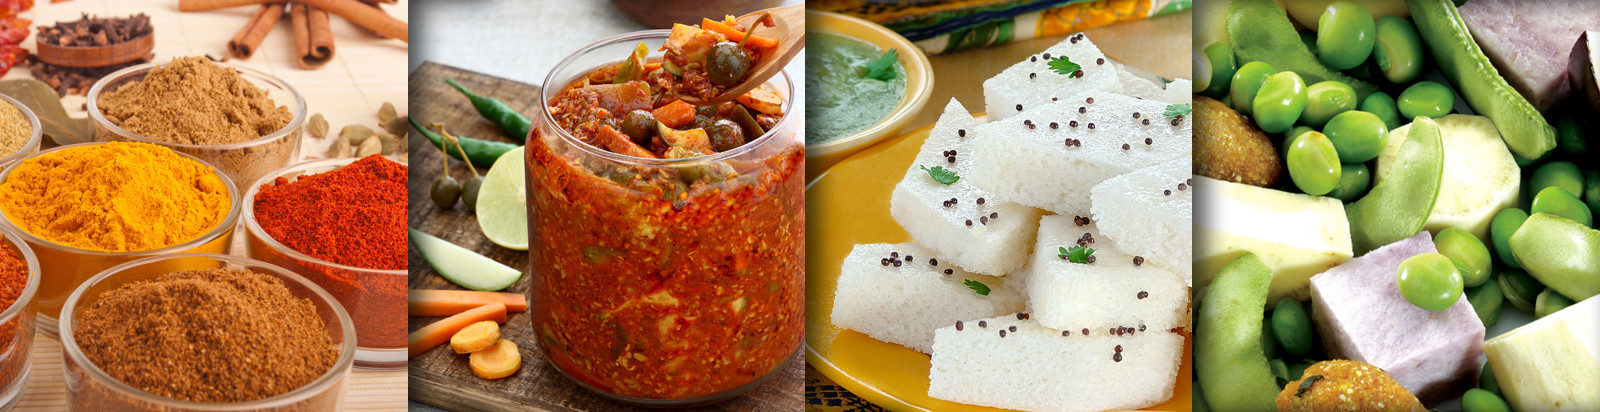 Indian Foods Exports - Premium Basic Spices, Blended Masala, Instant Mixes